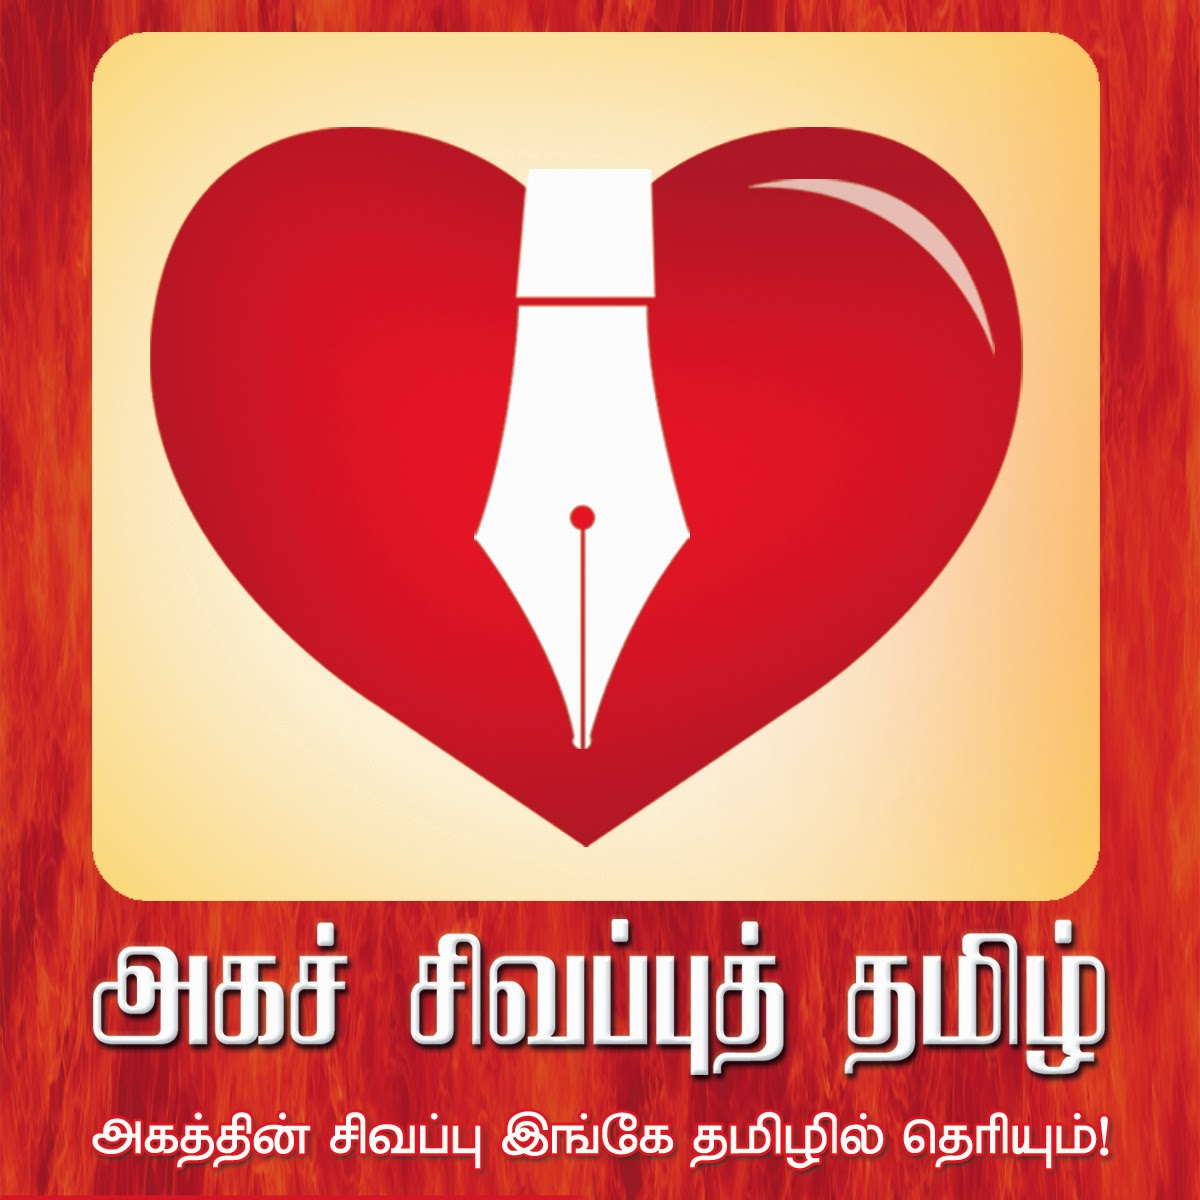 Aga Sivappu Thamizh - The Blog must read by every Tamil!